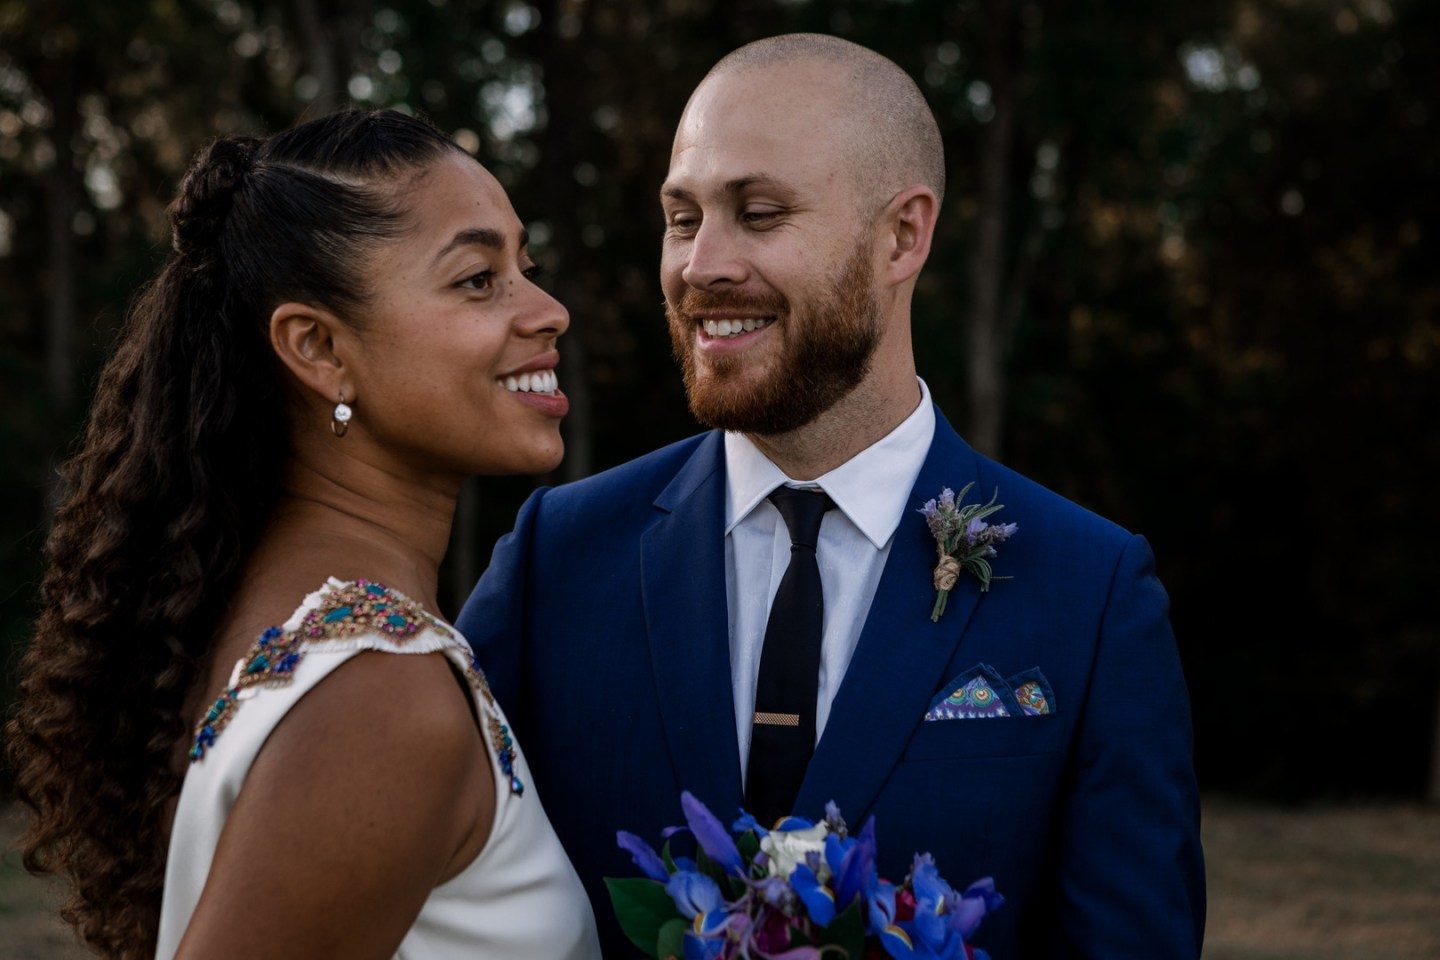 Southern Hospitality: Outdoor Nuptials in Thomasville, NC